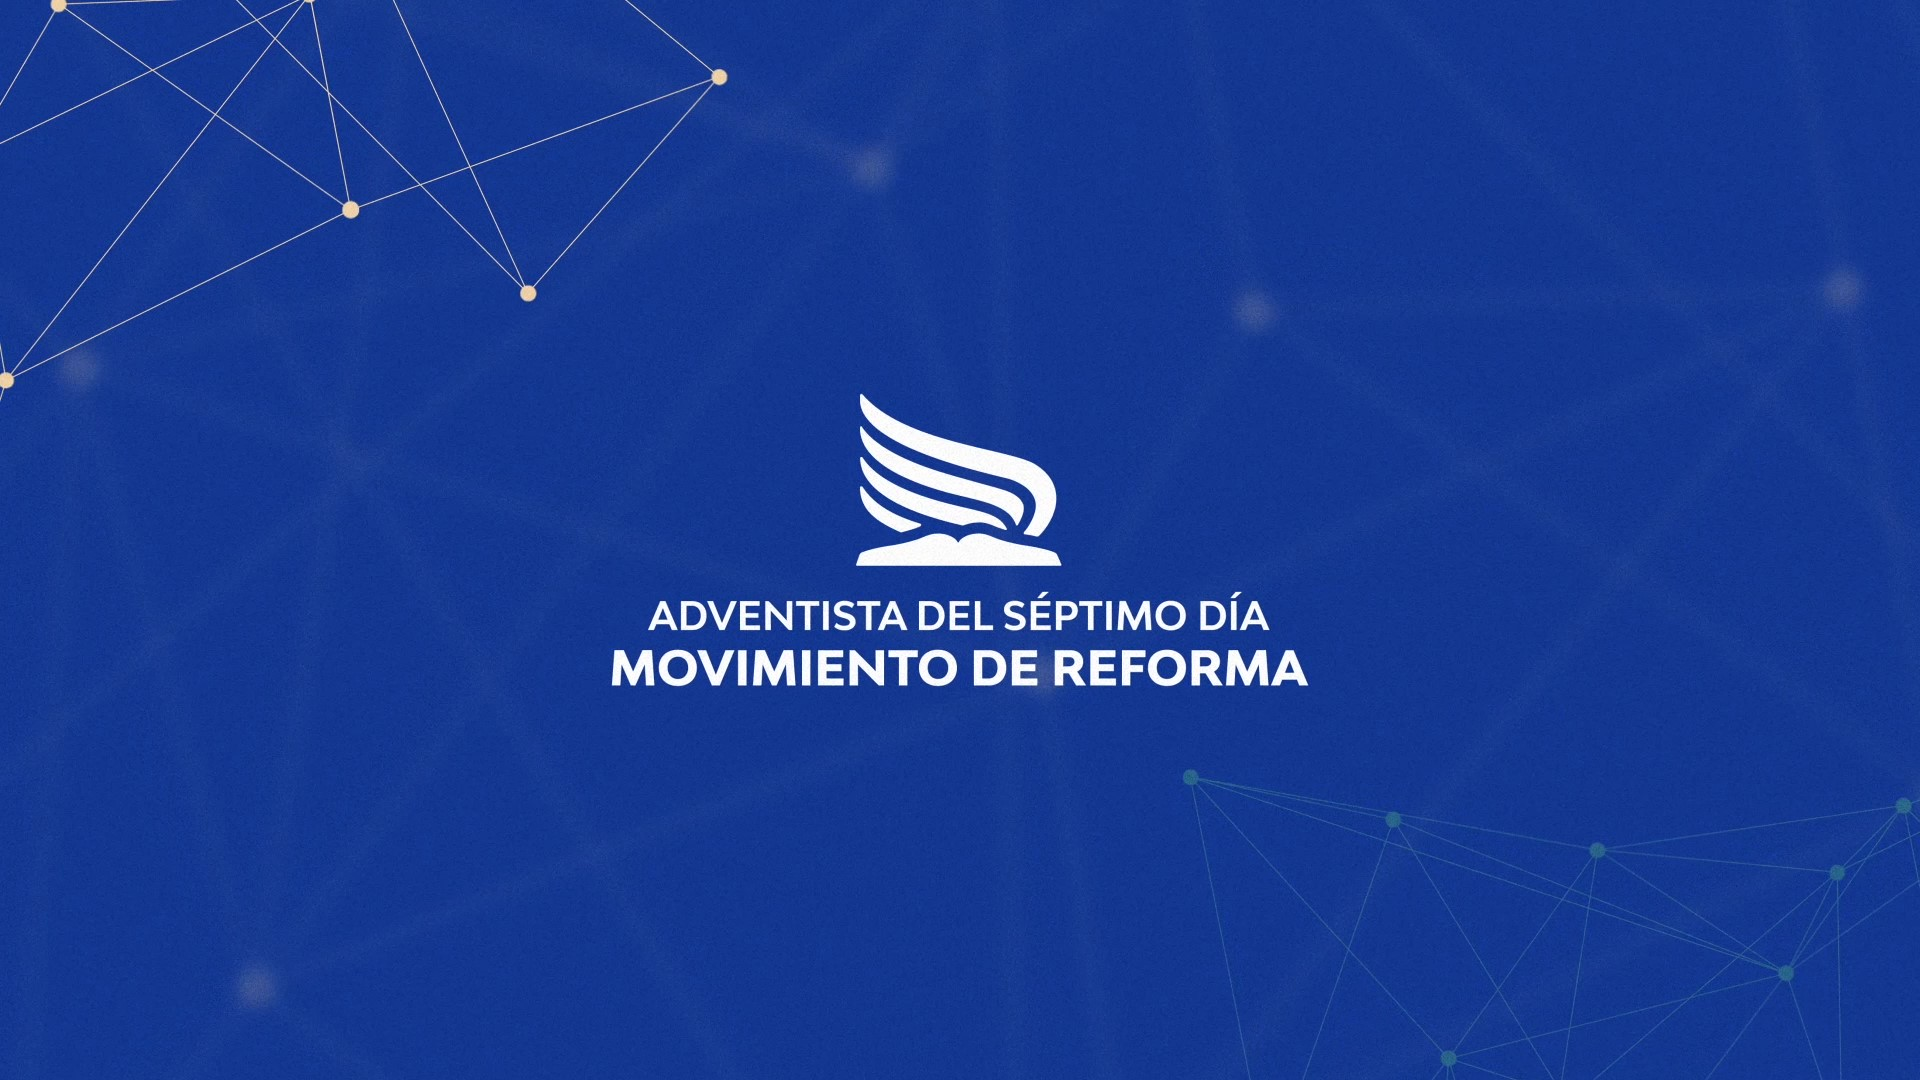 Seventh Day Adventist Reform Movement Institutional Video